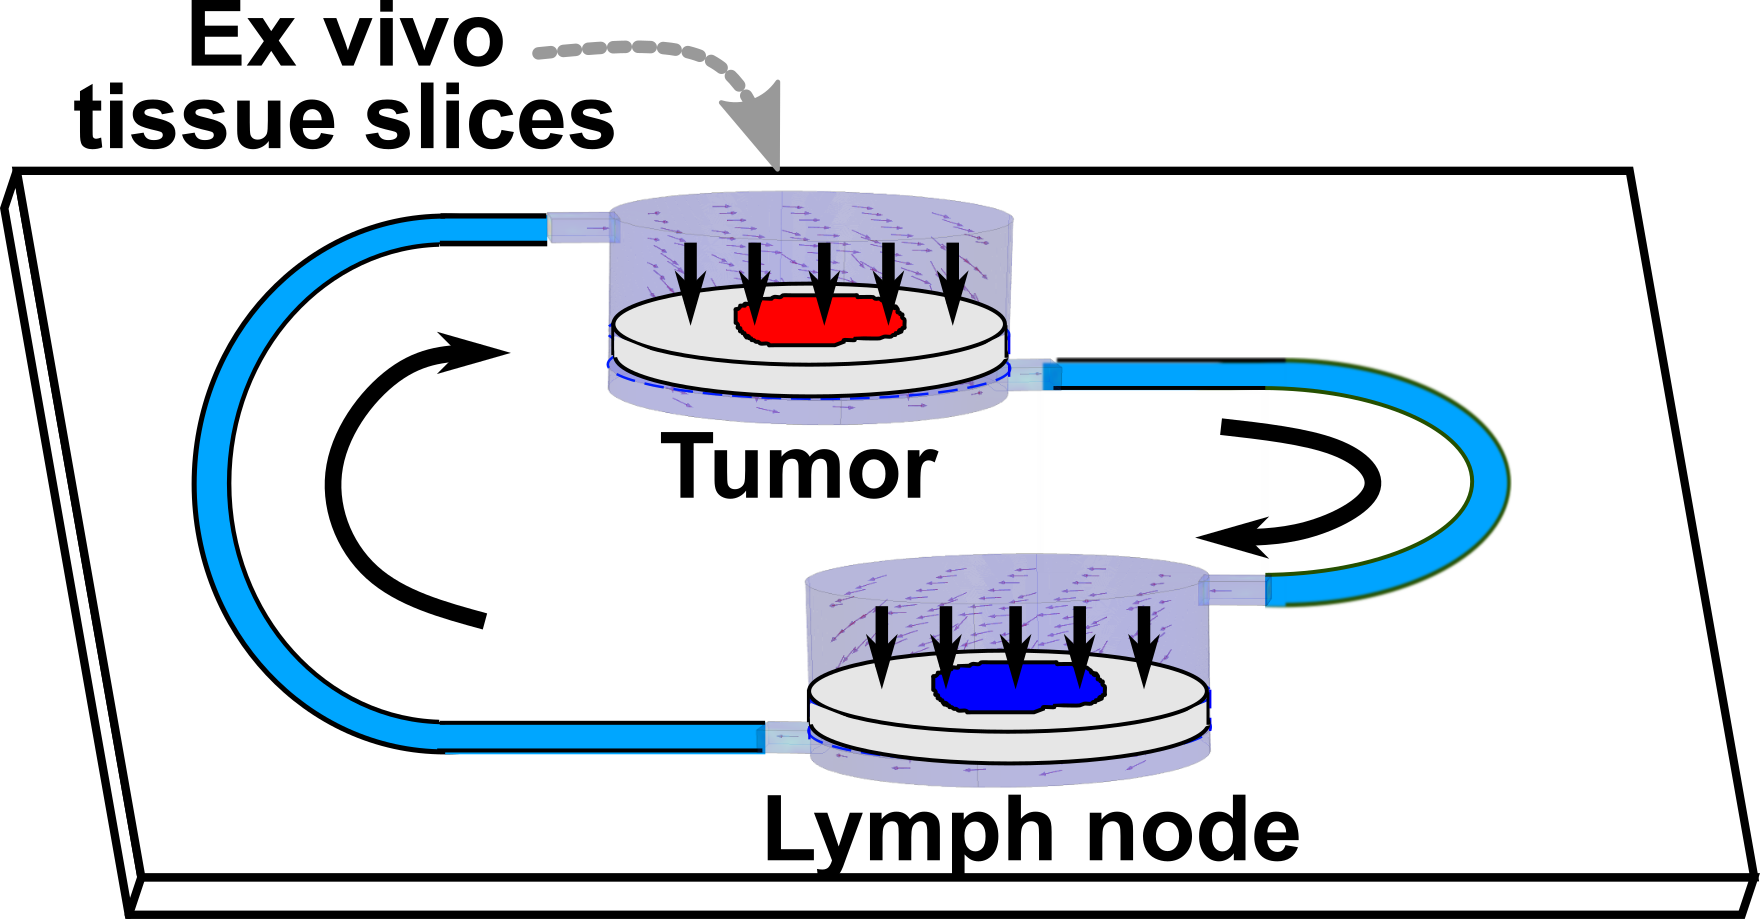 """Linking two tissues on-chip for tumor-immunity - Shim S, Belanger MC, Harris AR, Munson JM, & Pompano RR. """"Two-way communication between tissues on a microfluidic chip: application to tumor-lymph node interaction."""" Lab on a Chip (2019), 19, 1013-1026. [PubMed] [DOI: 10.1039/C8LC00957K]Part of the LOC Organ-, body- and disease-on-a-chip themed collection."""